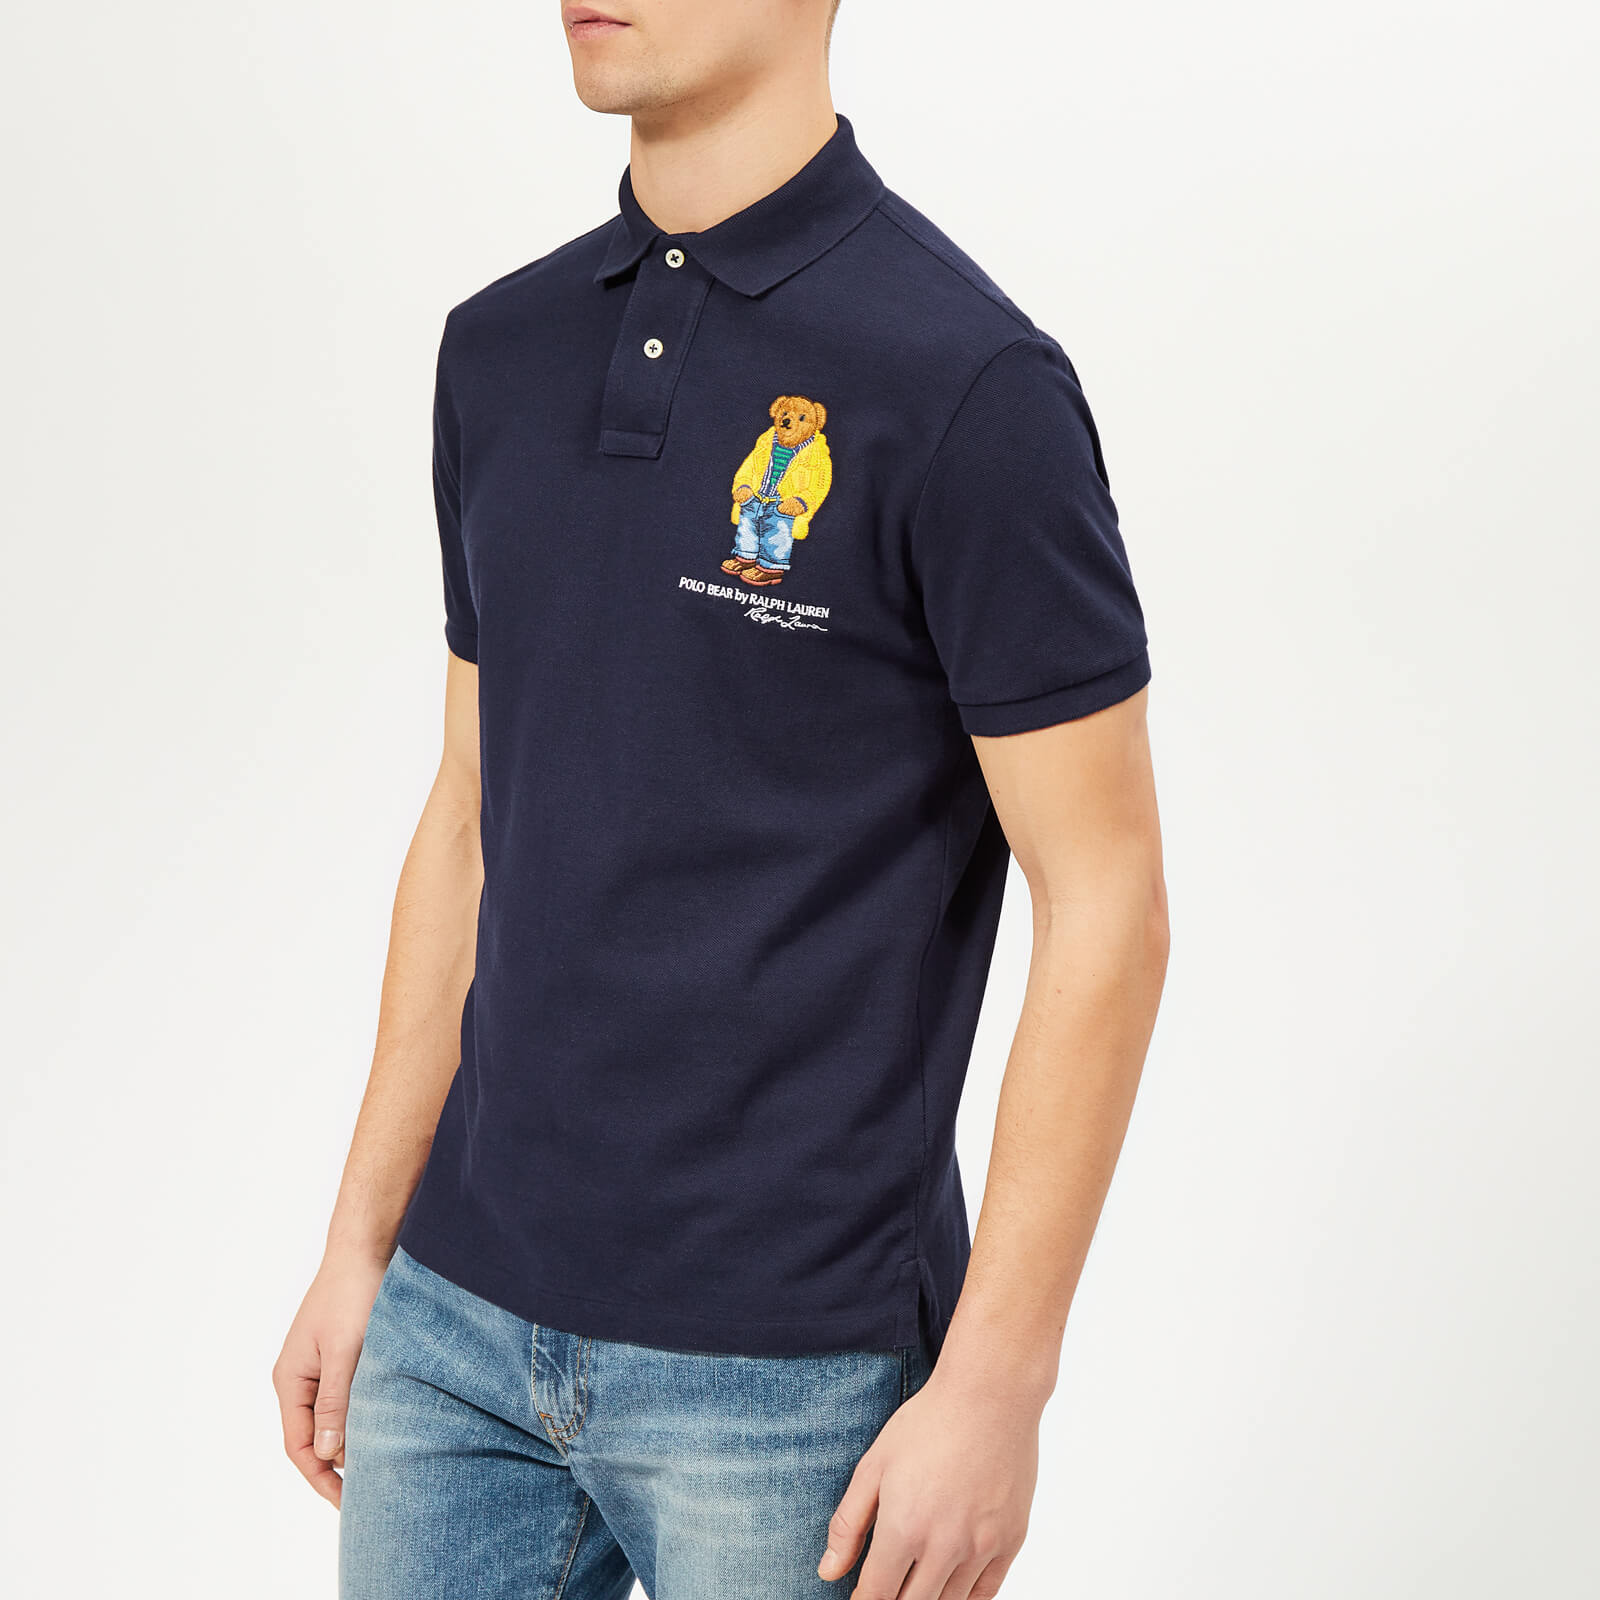 37dfaf6e7 Polo Ralph Lauren Men's Bear Embroidered Polo Shirt - Cruise Navy - Free UK  Delivery over £50